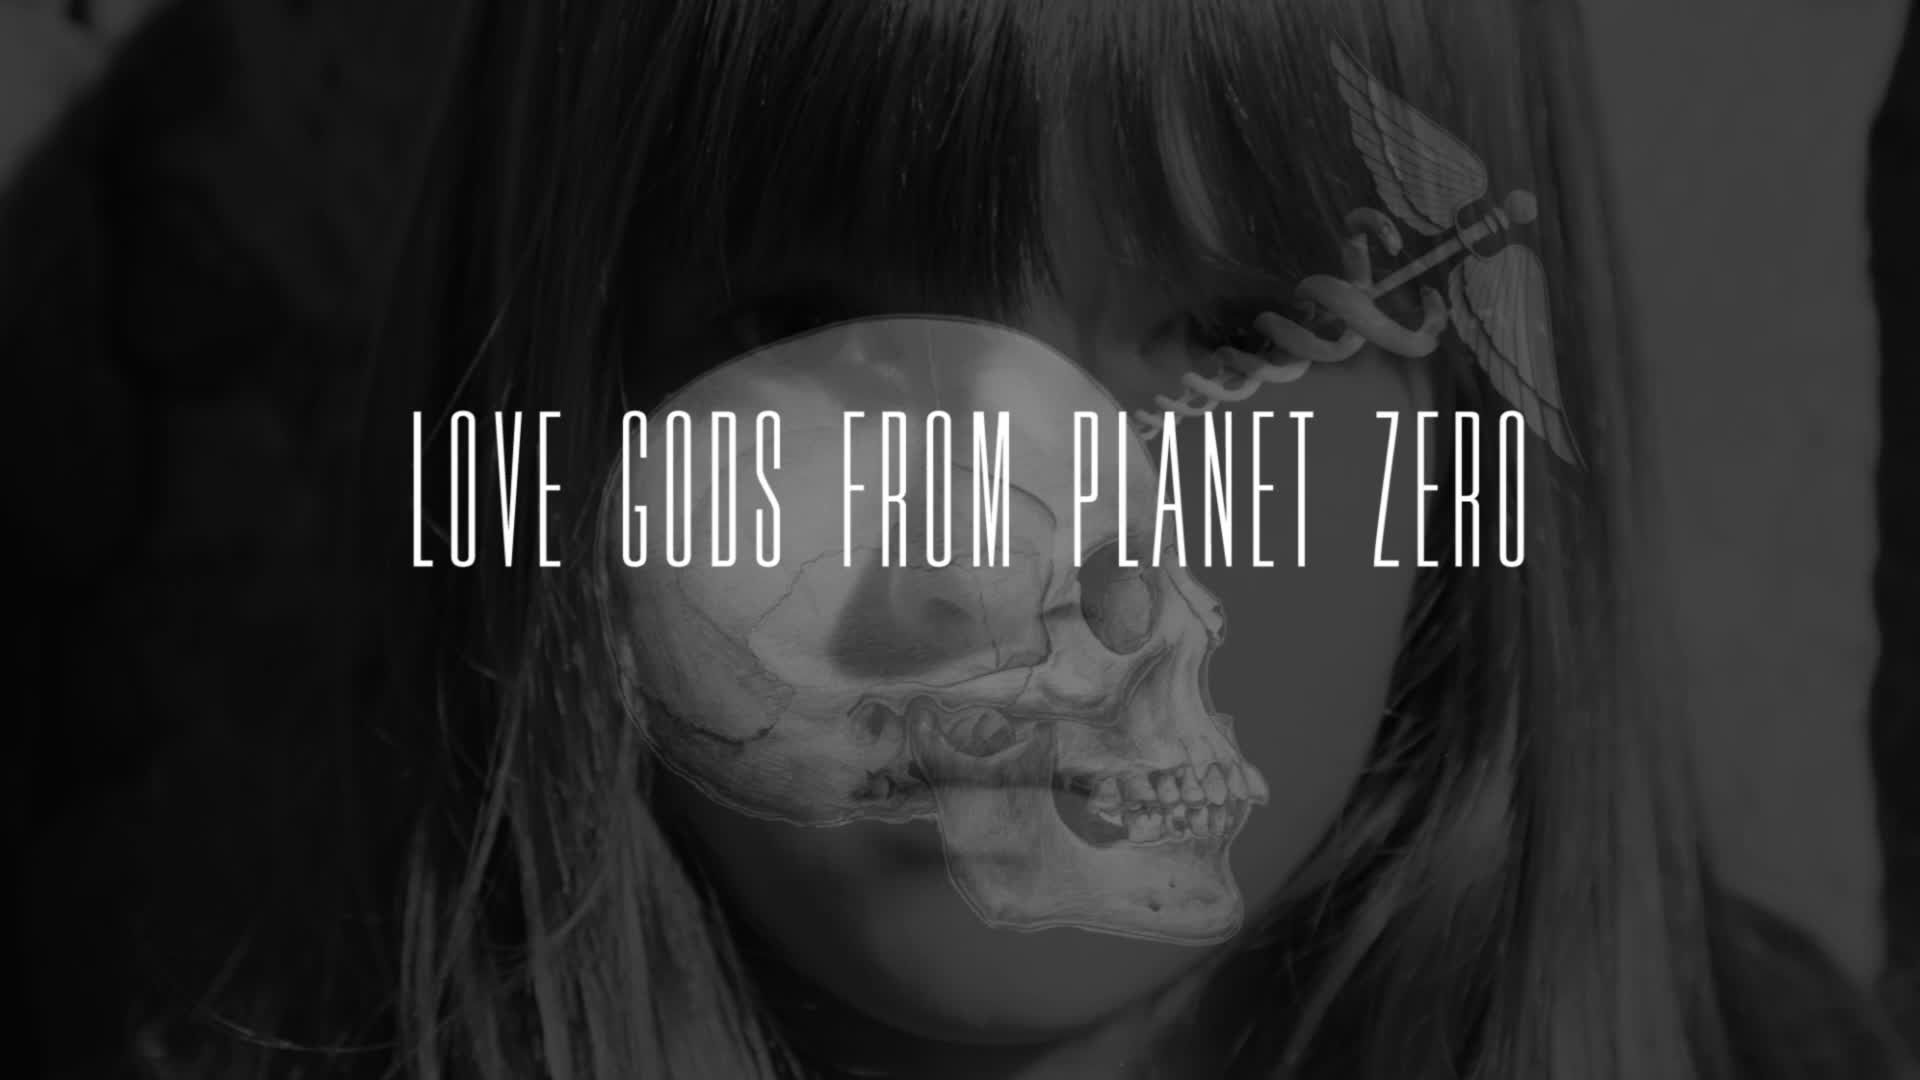 Love Gods from Planet Zero hd full movie download